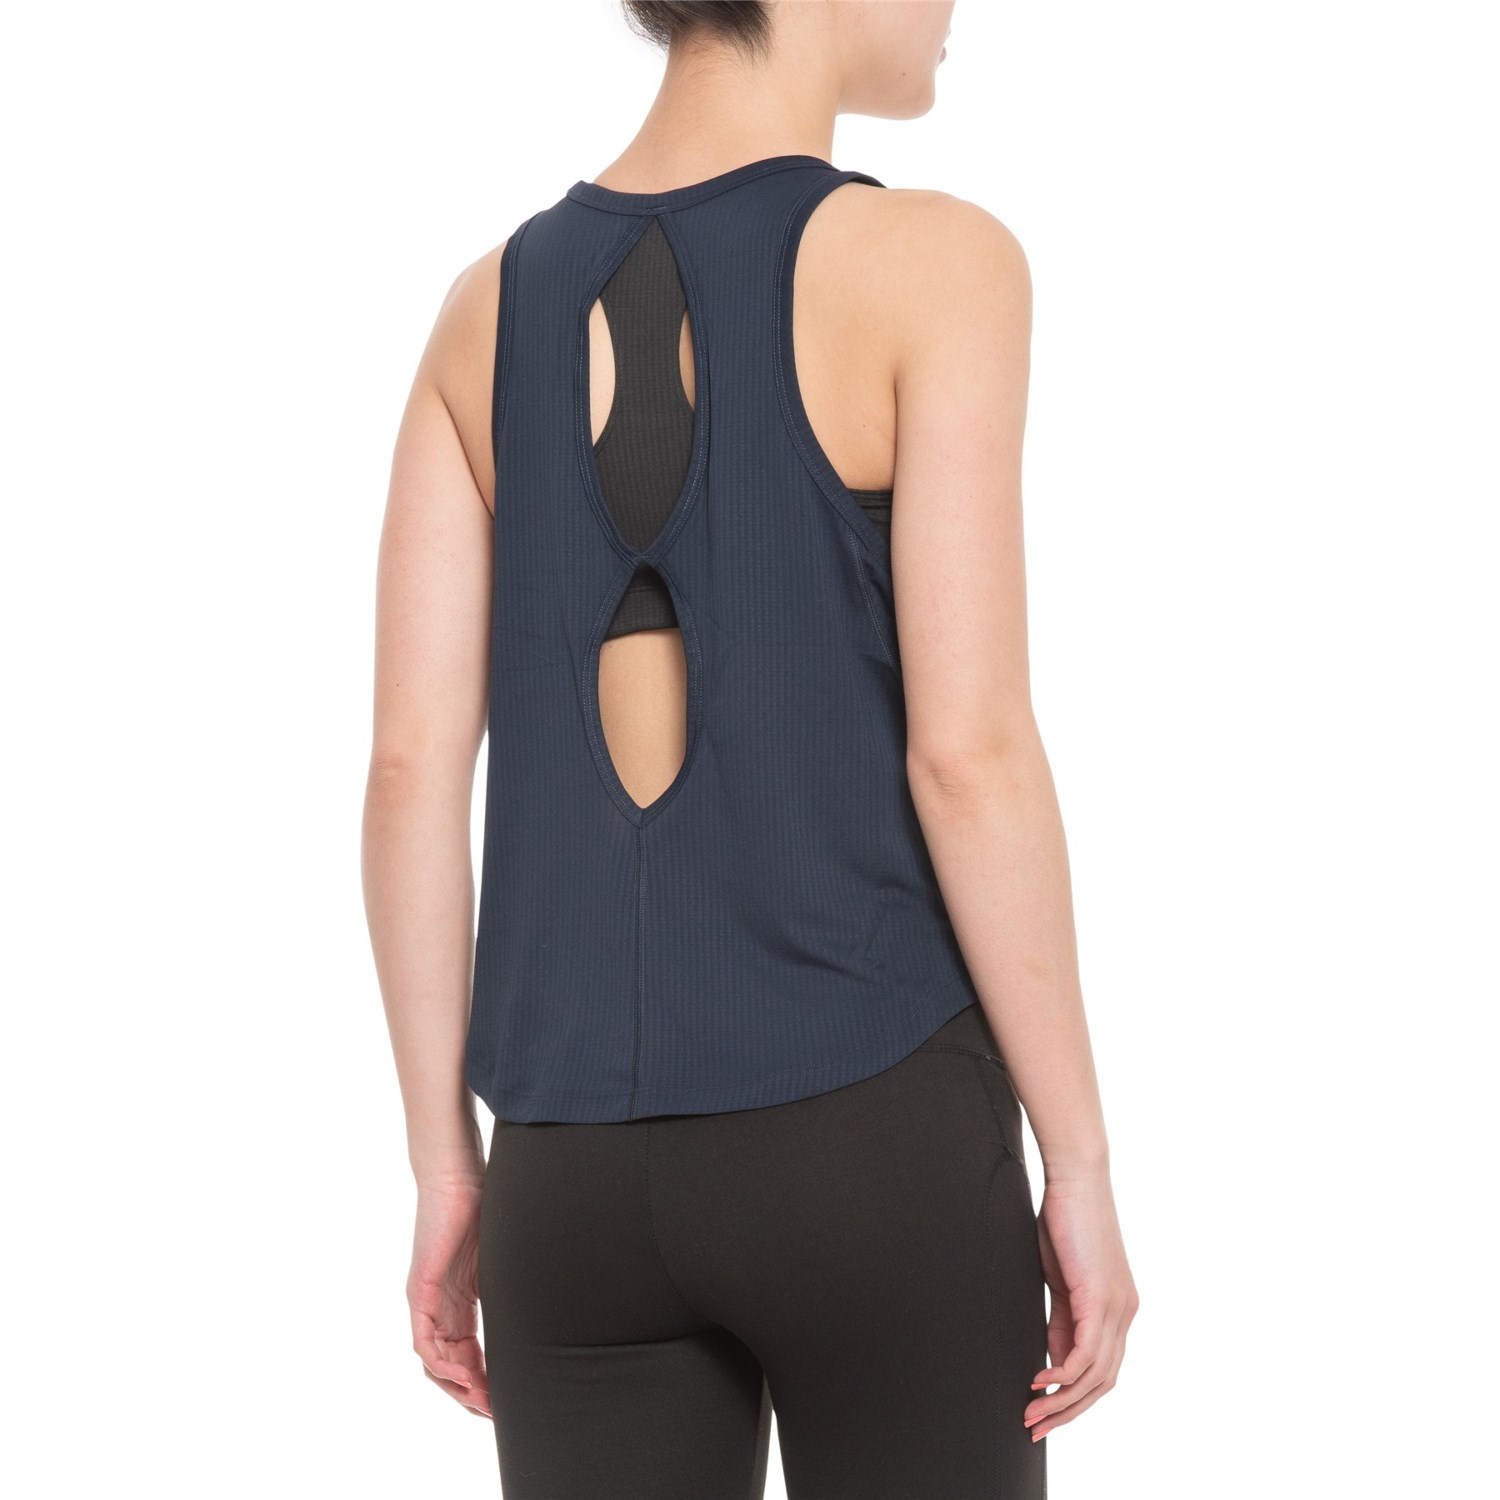 38c6aa5ceca7d The North Face Motivation 2-in-1 Tank Top (For Women) in ...